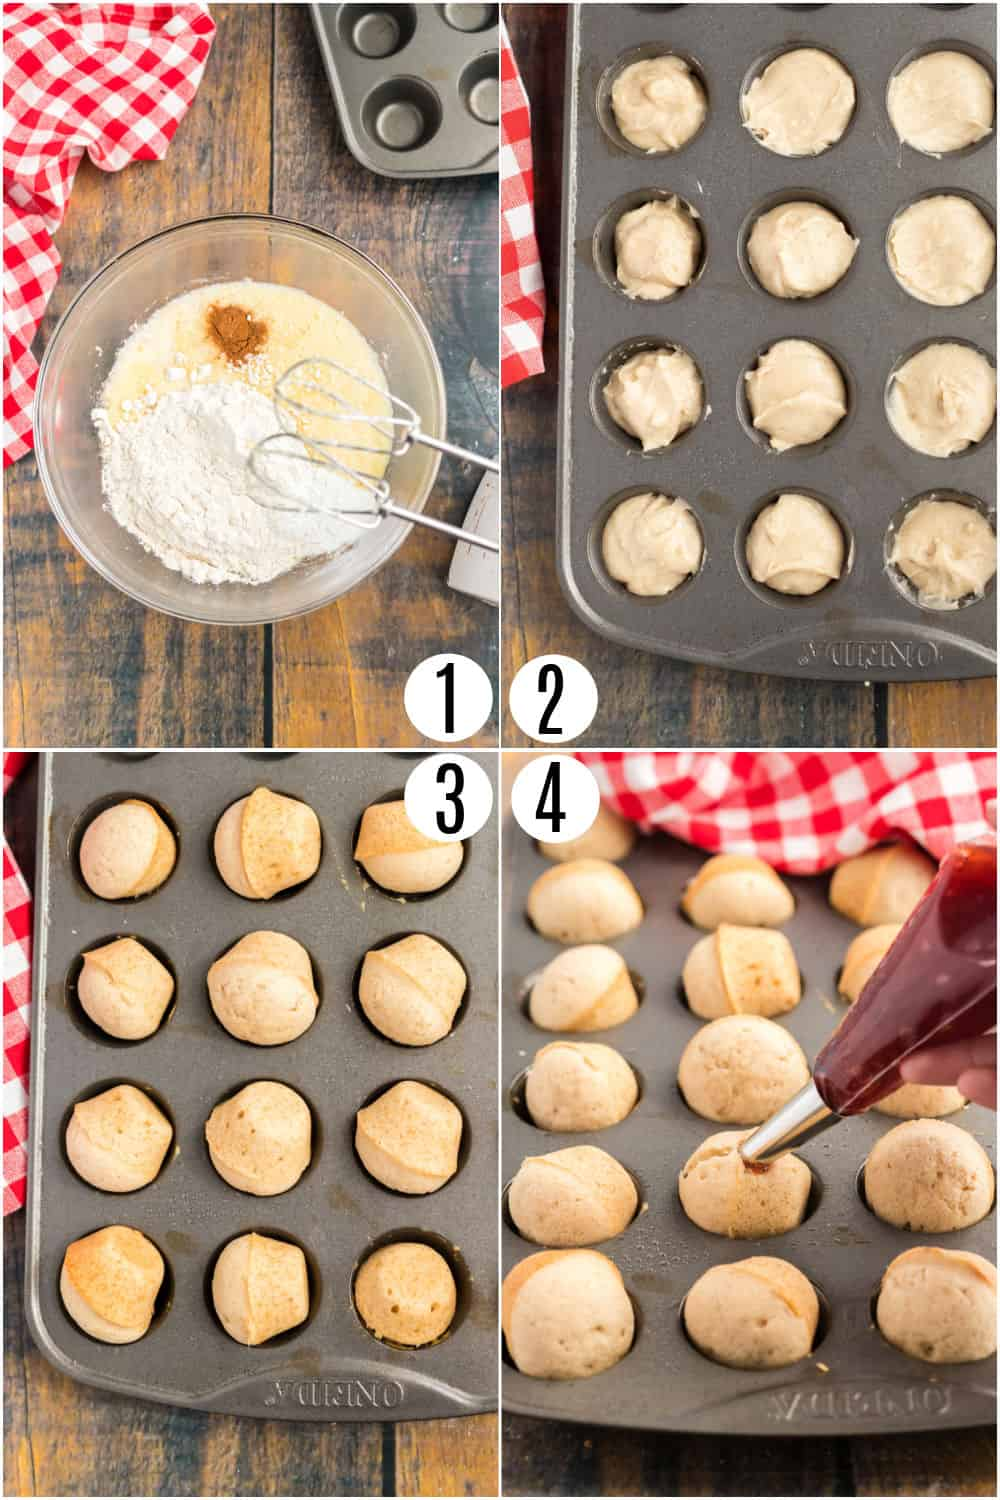 Step by step photos to make jelly filled donut holes.